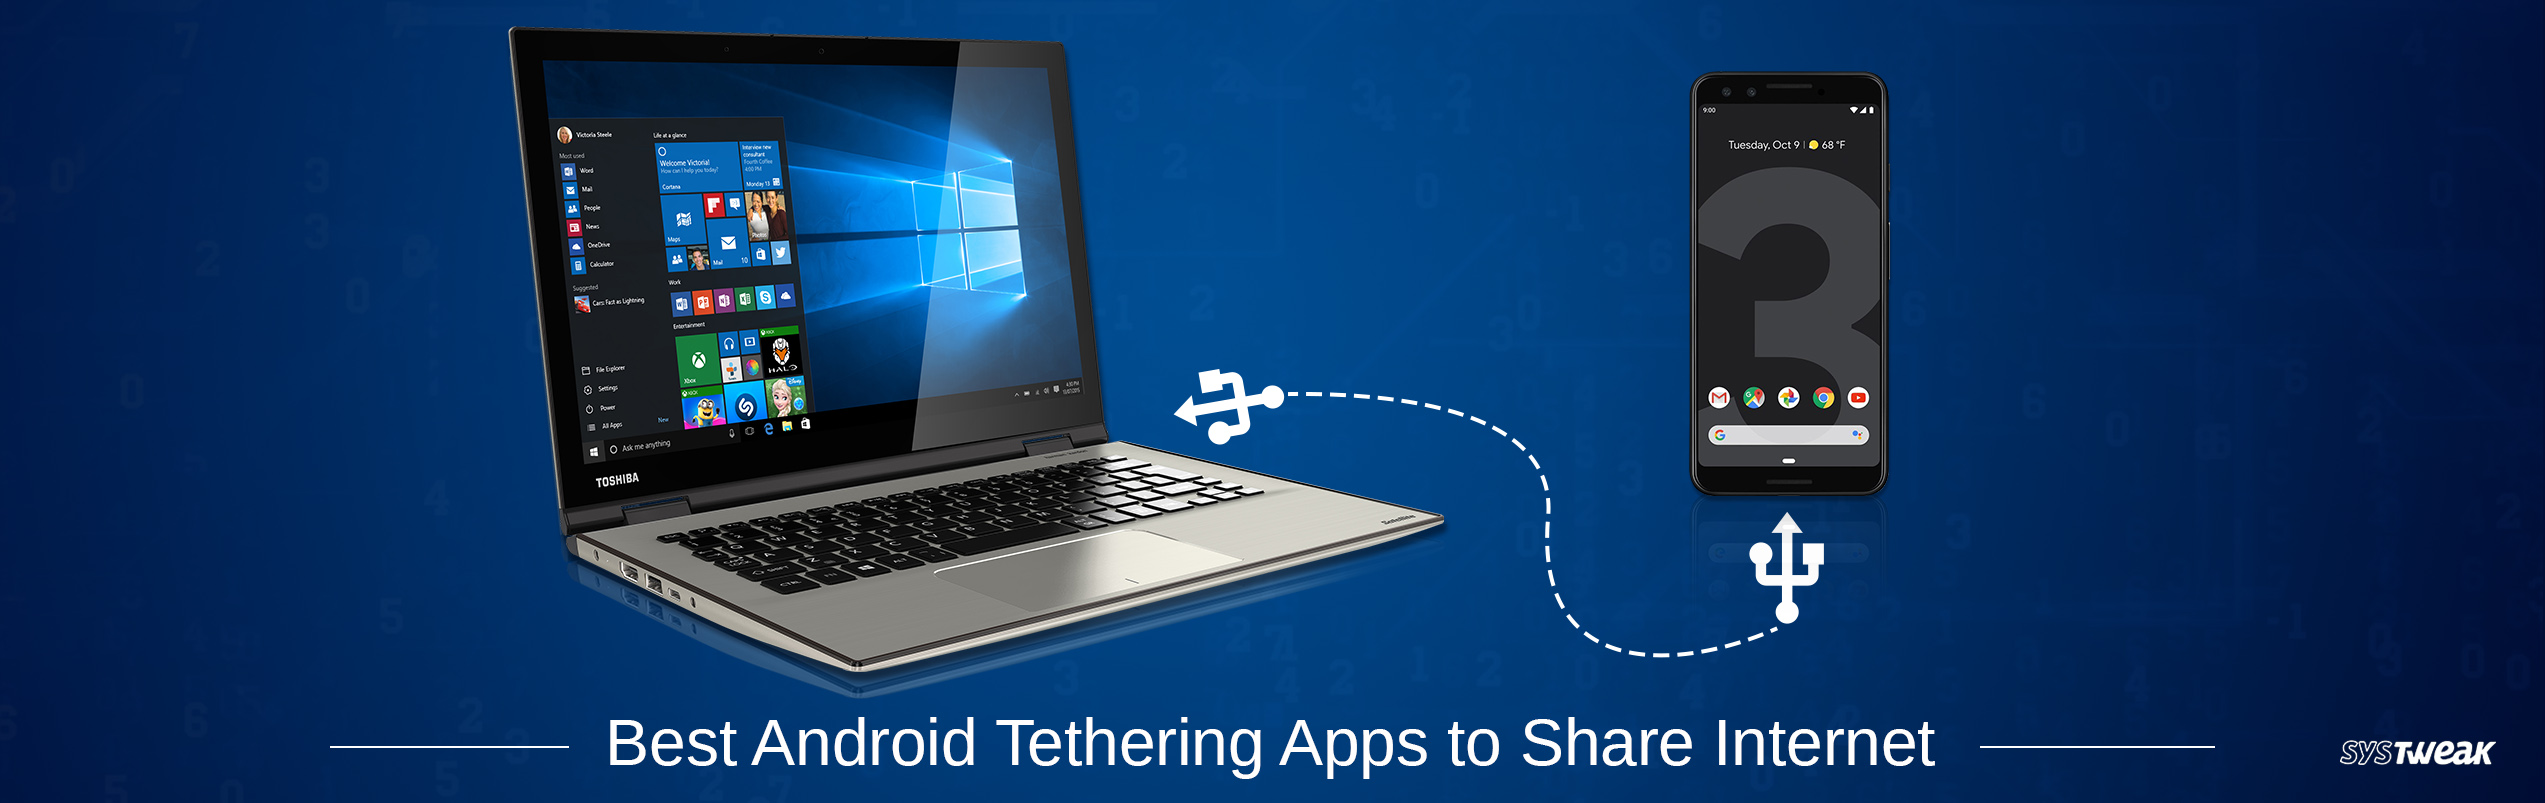 Top 7 Best Android Tethering Apps To Share Internet